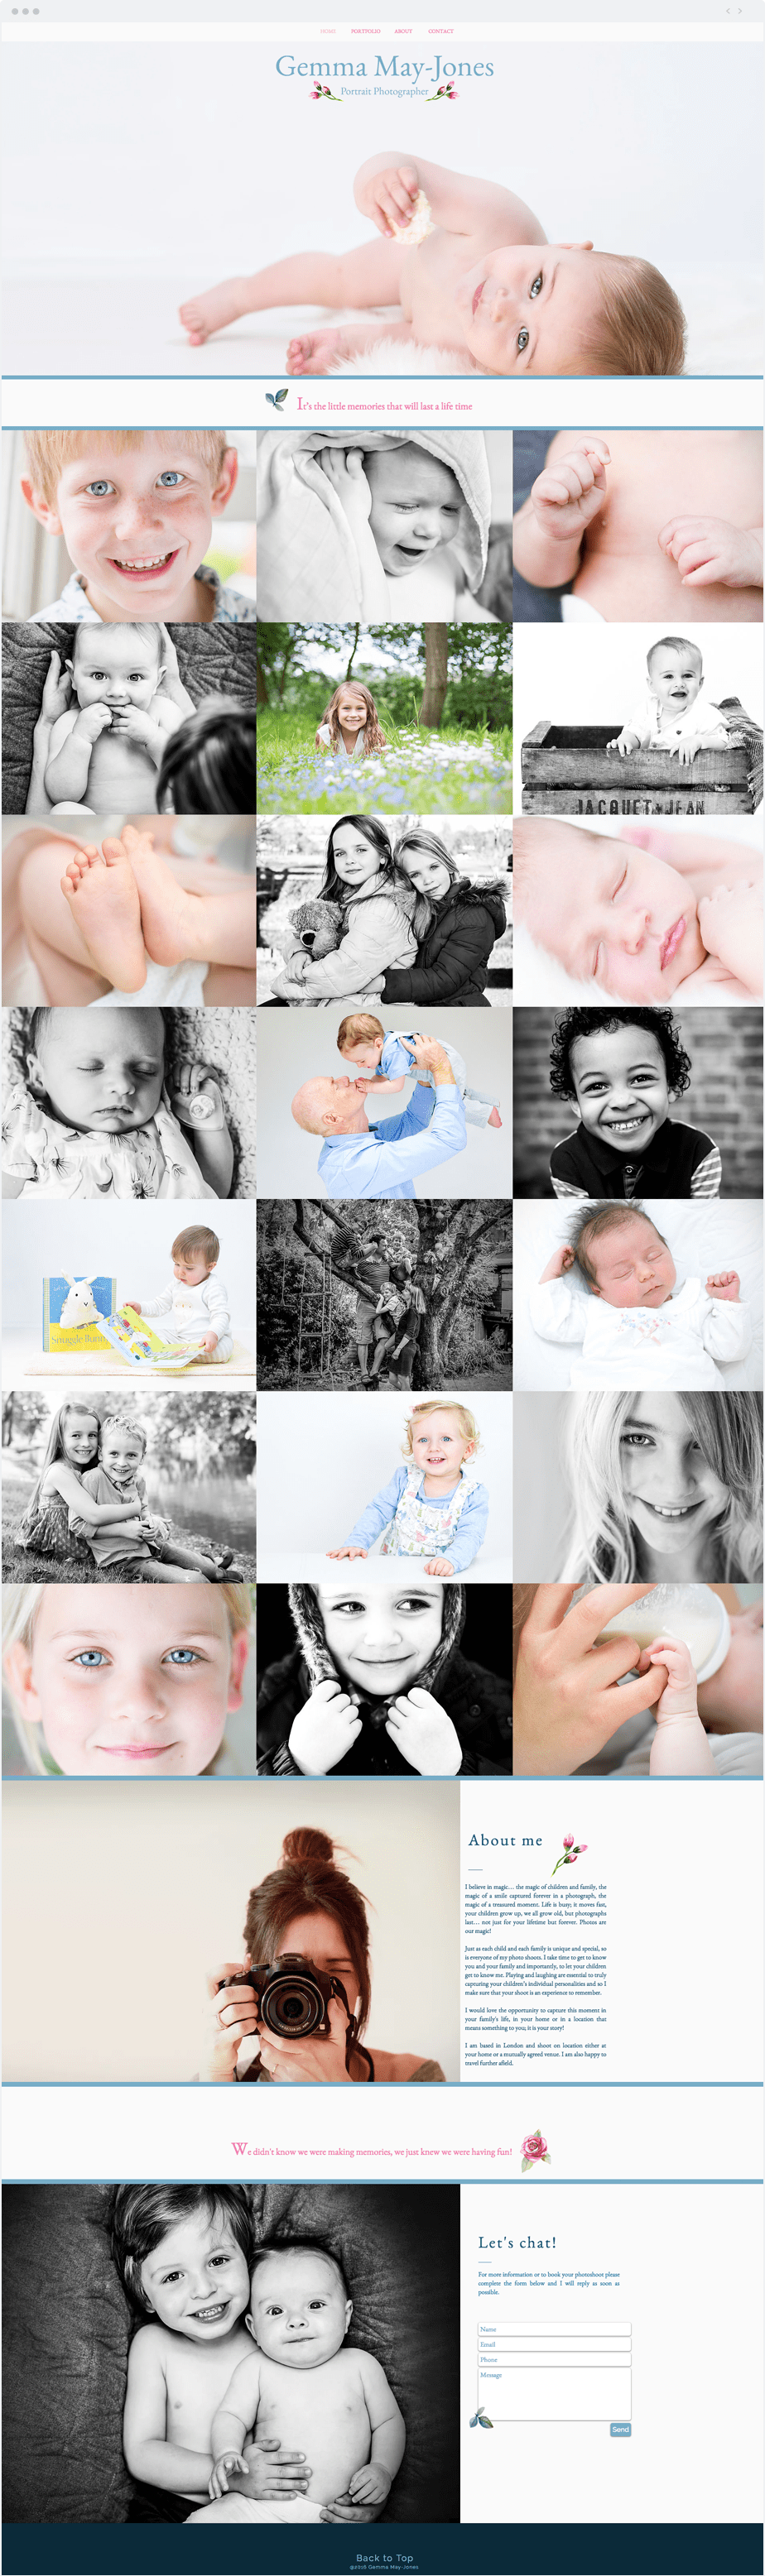 Stunning Wix online portfolio by newborn, baby and children photographer Gemma May Jones